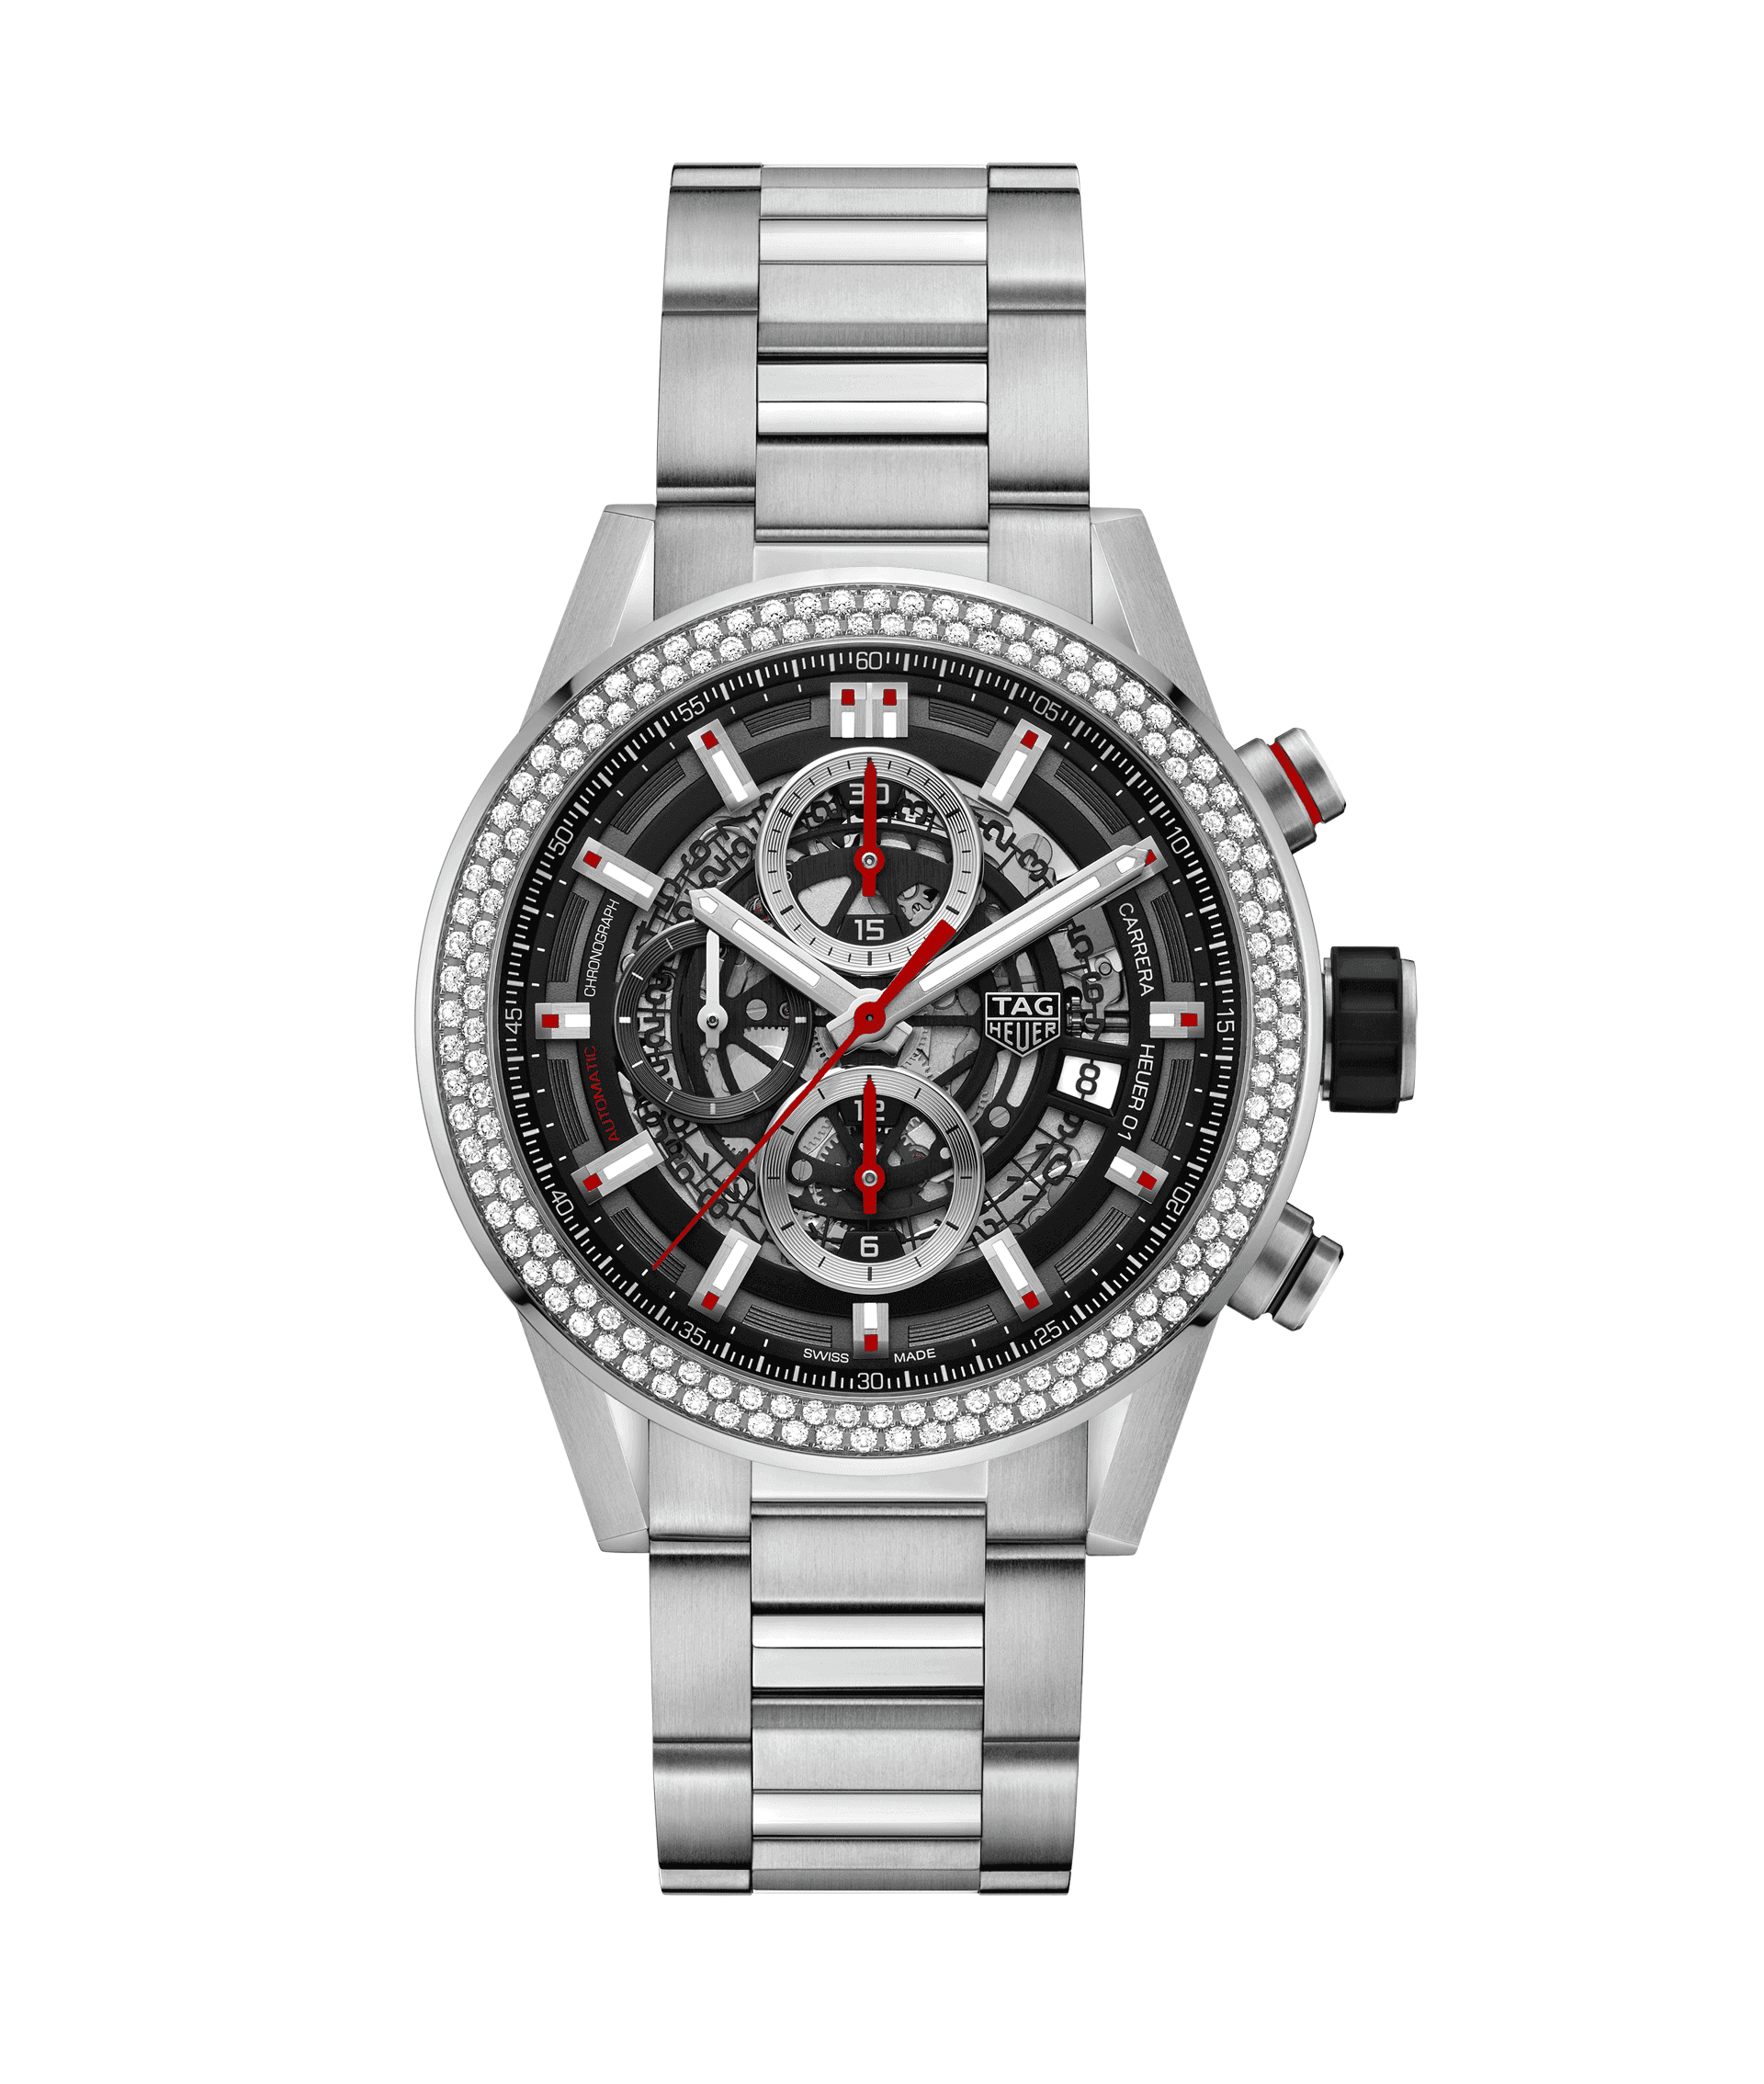 TAG HEUER CARRERA CALIBRE HEUER 01 AUTOMATIC CHRONOGRAPH 100m - 43mm - CAR201P.BA0766